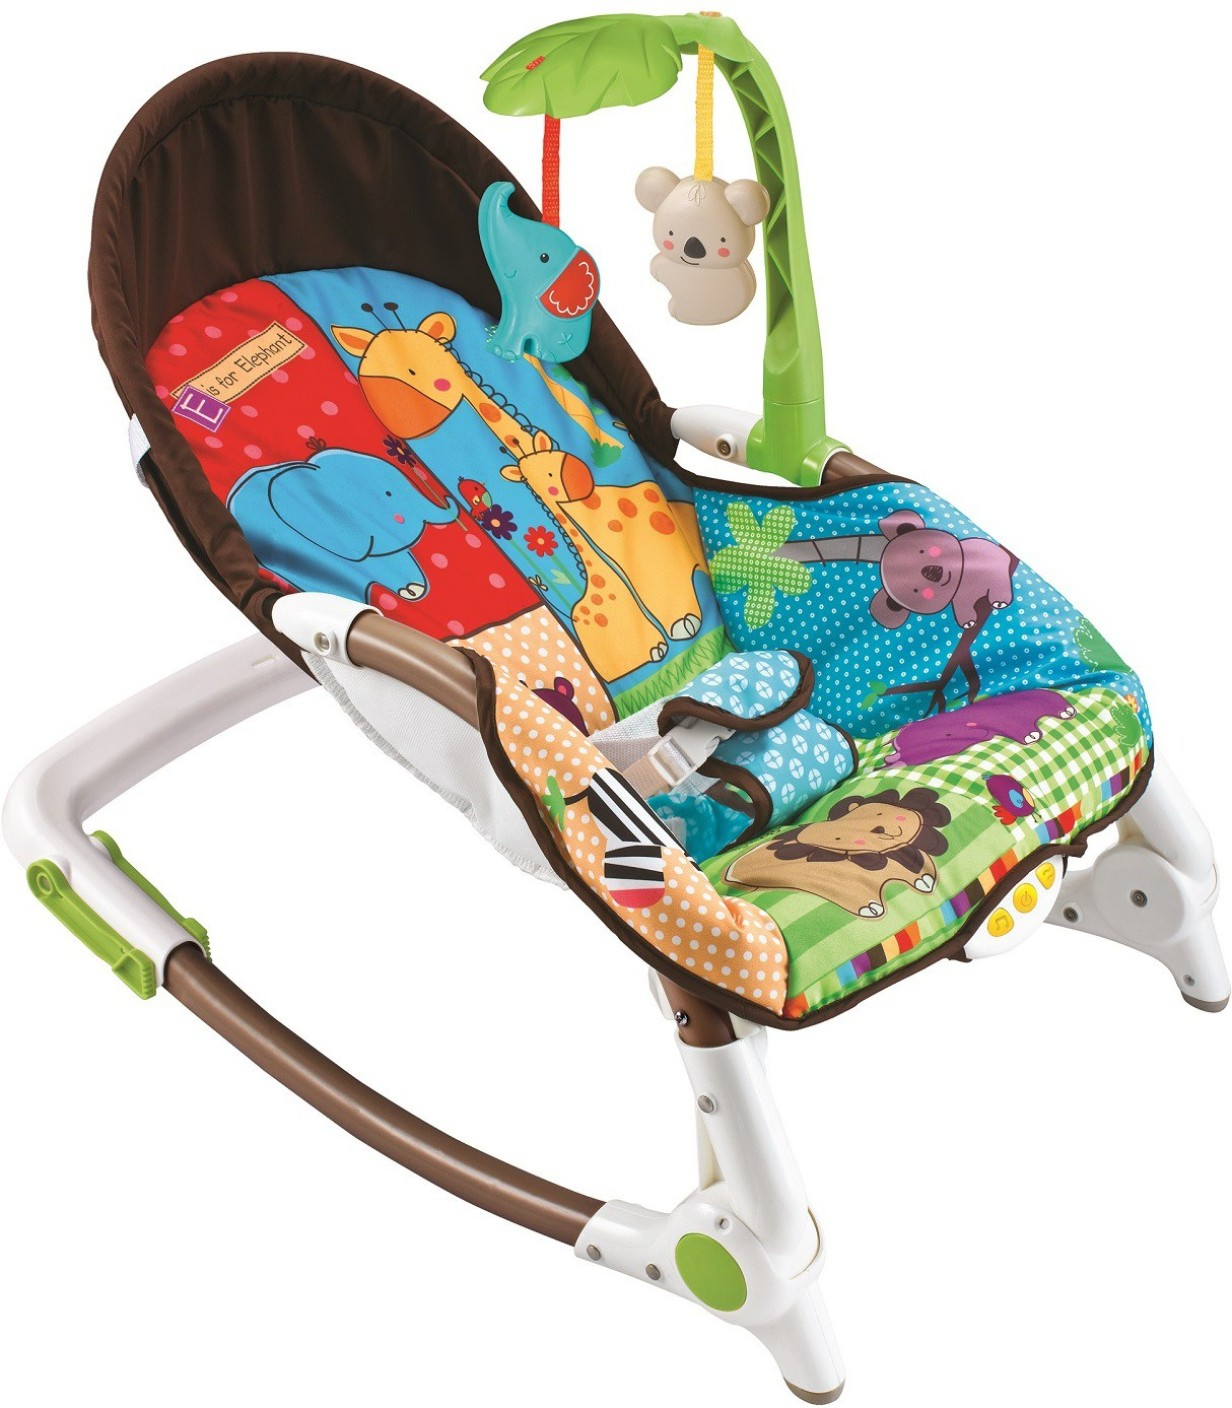 Electric baby rocker chair - Fiddle Diddle Baby Bouncer Cum Rocker Share